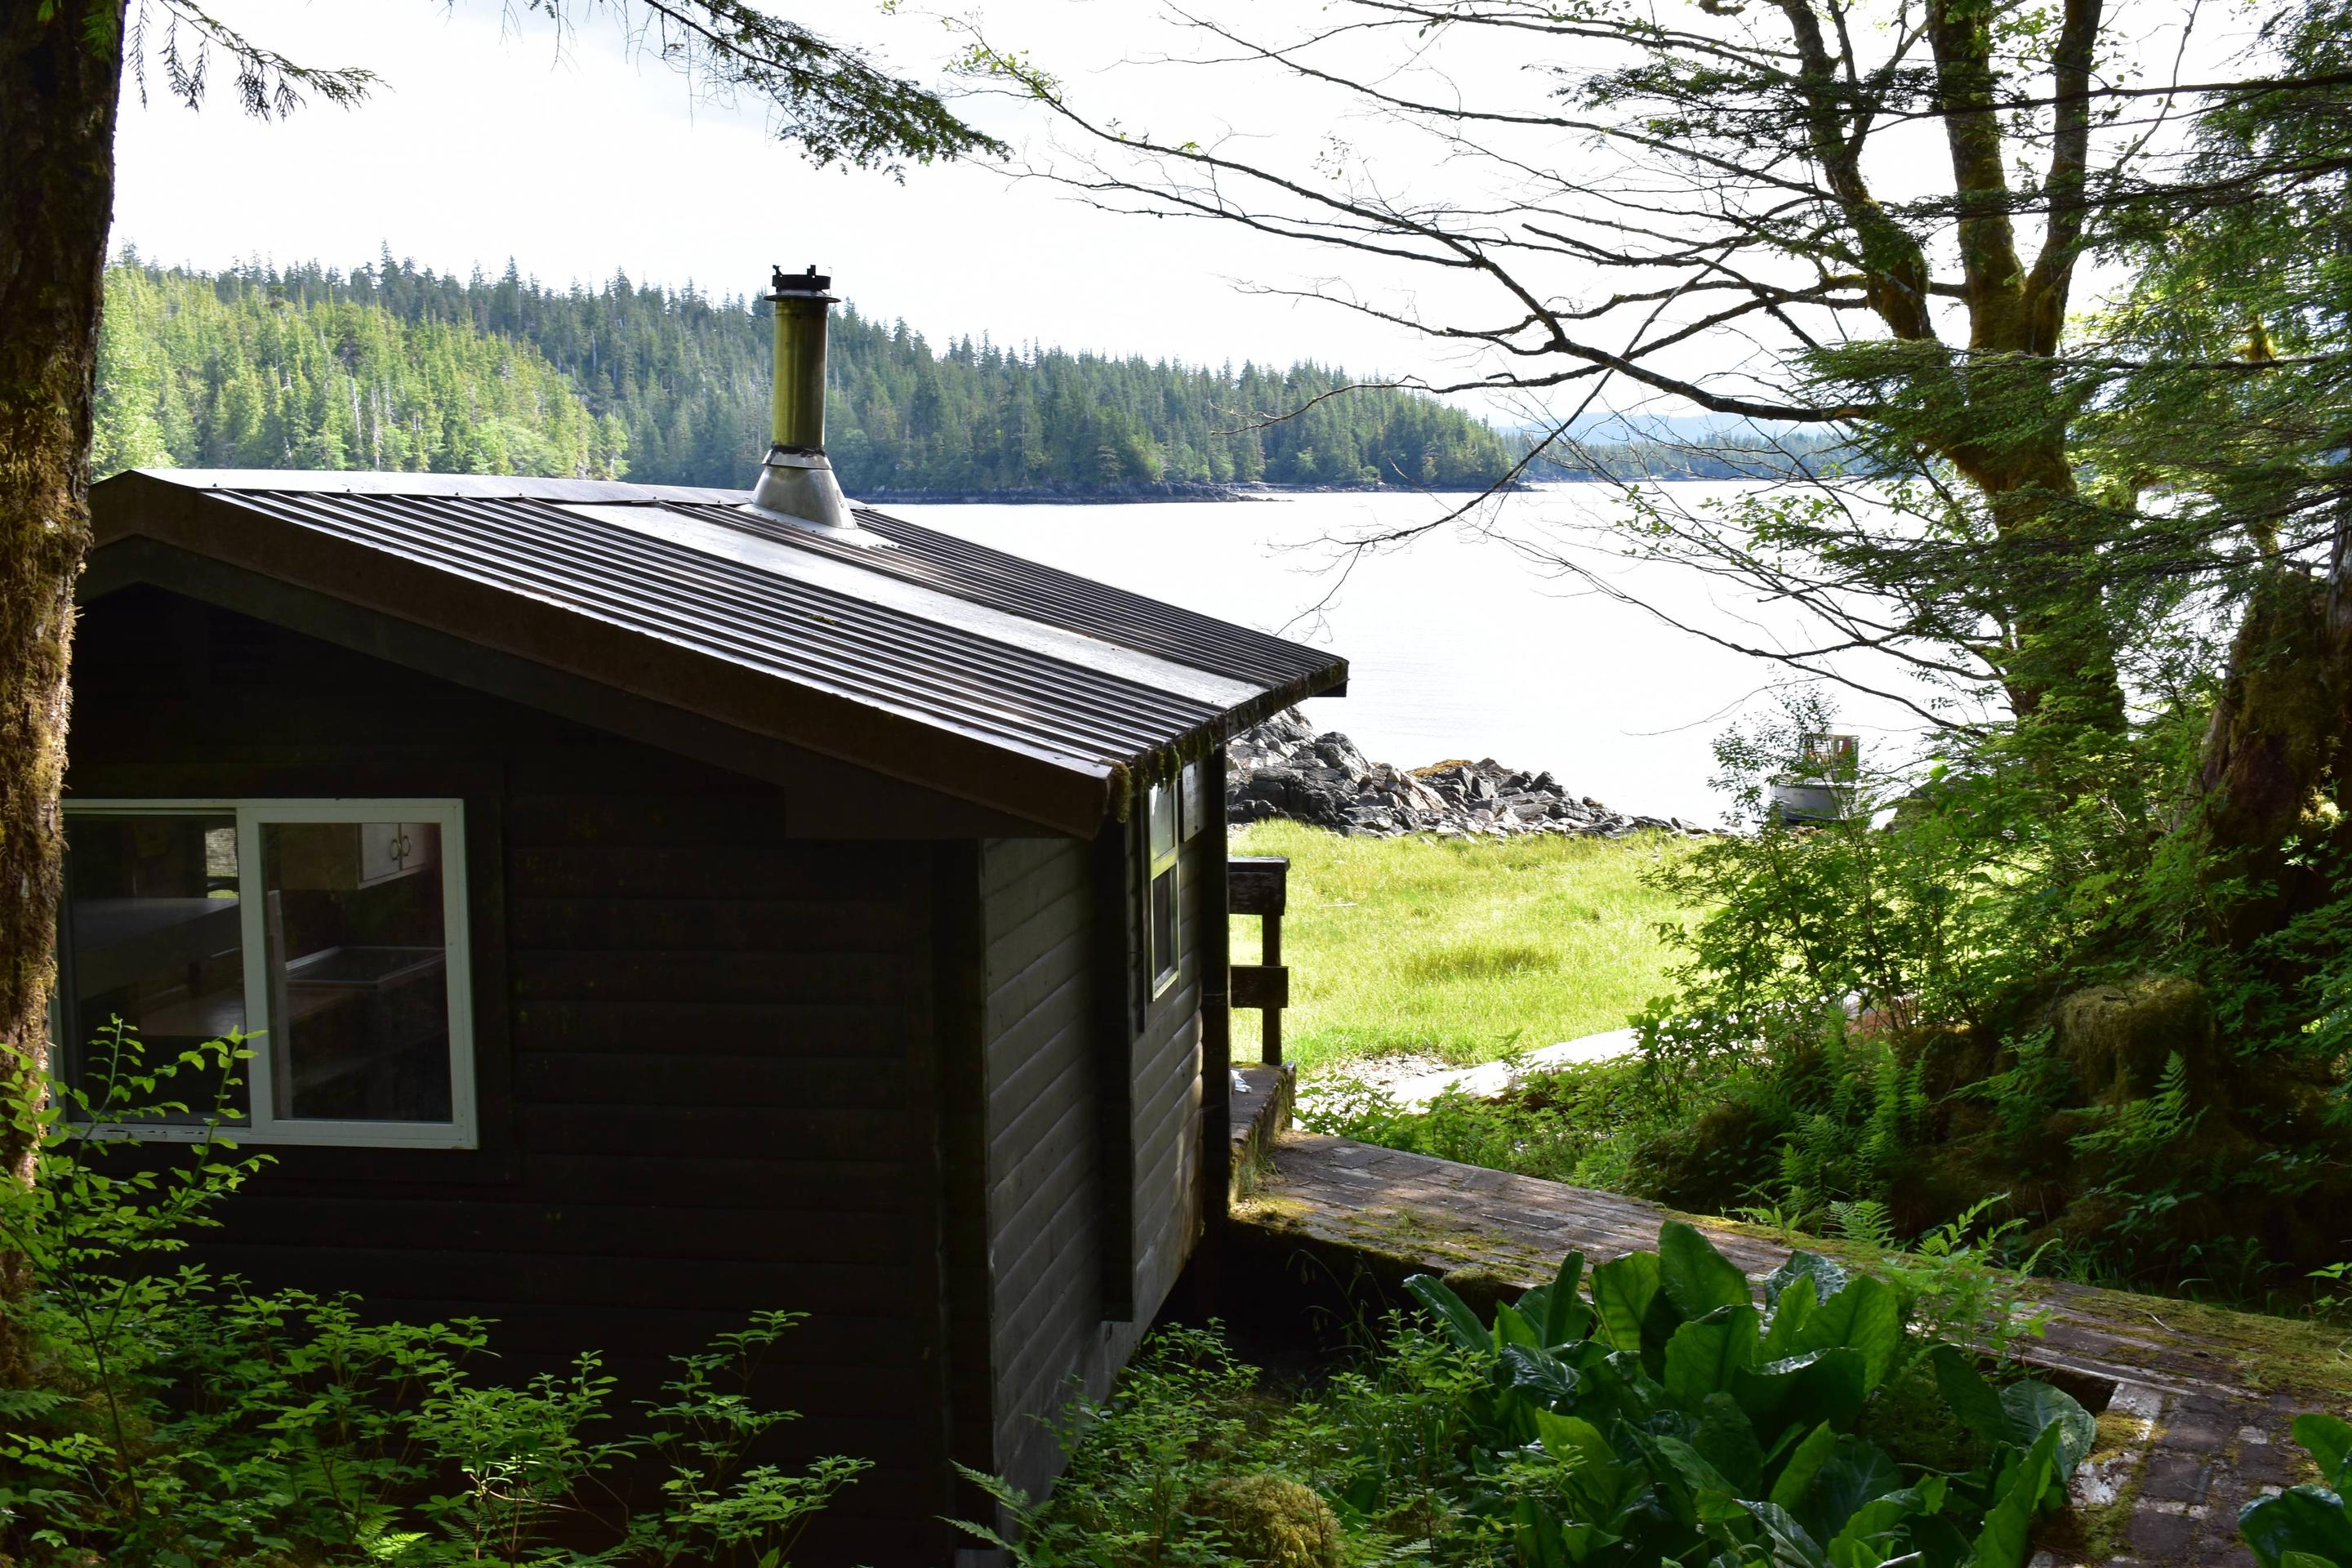 View of Alava Bay with cabin in foregroundAlava Bay with cabin.